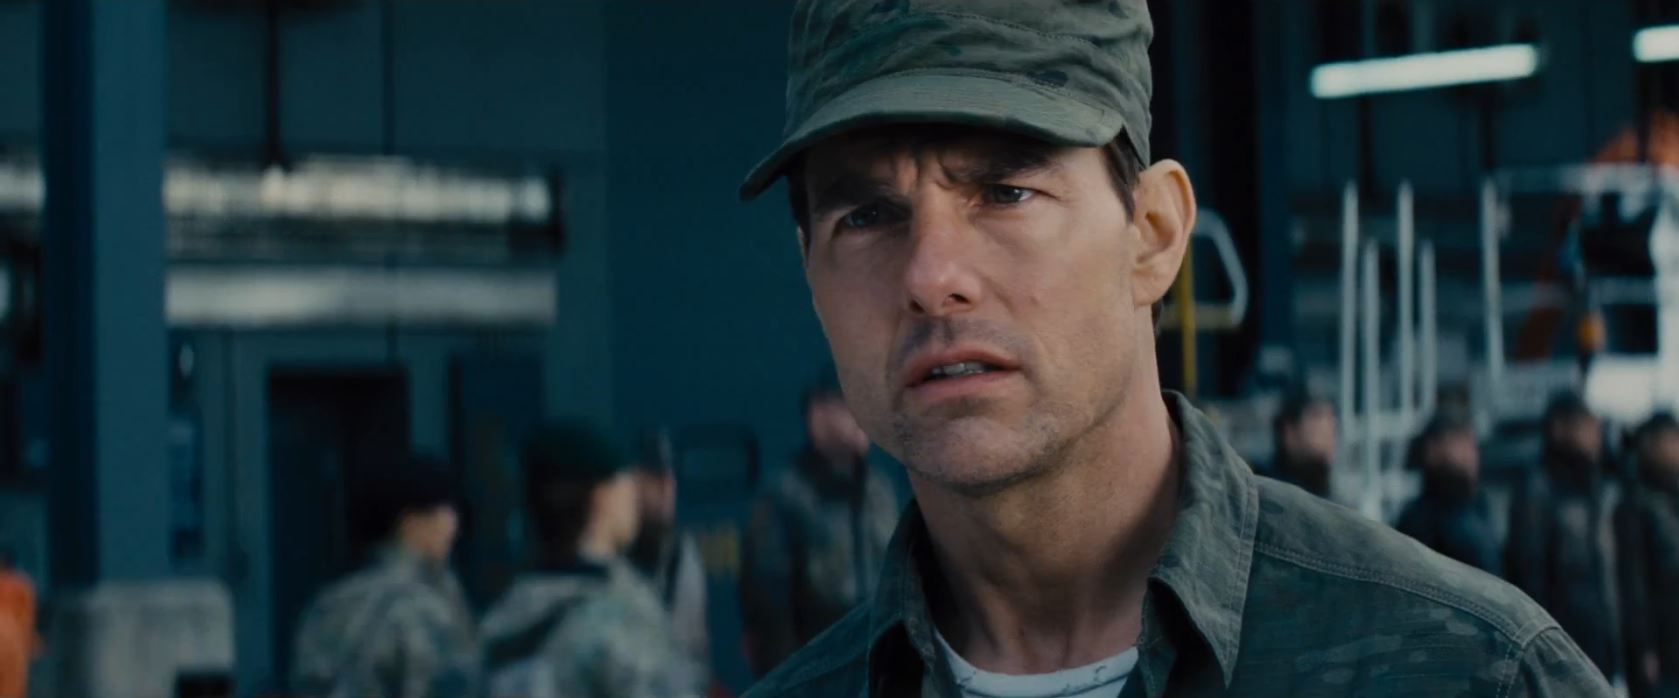 Tom Cruise as Lt. Col. Cage - Edge of Tomorrow